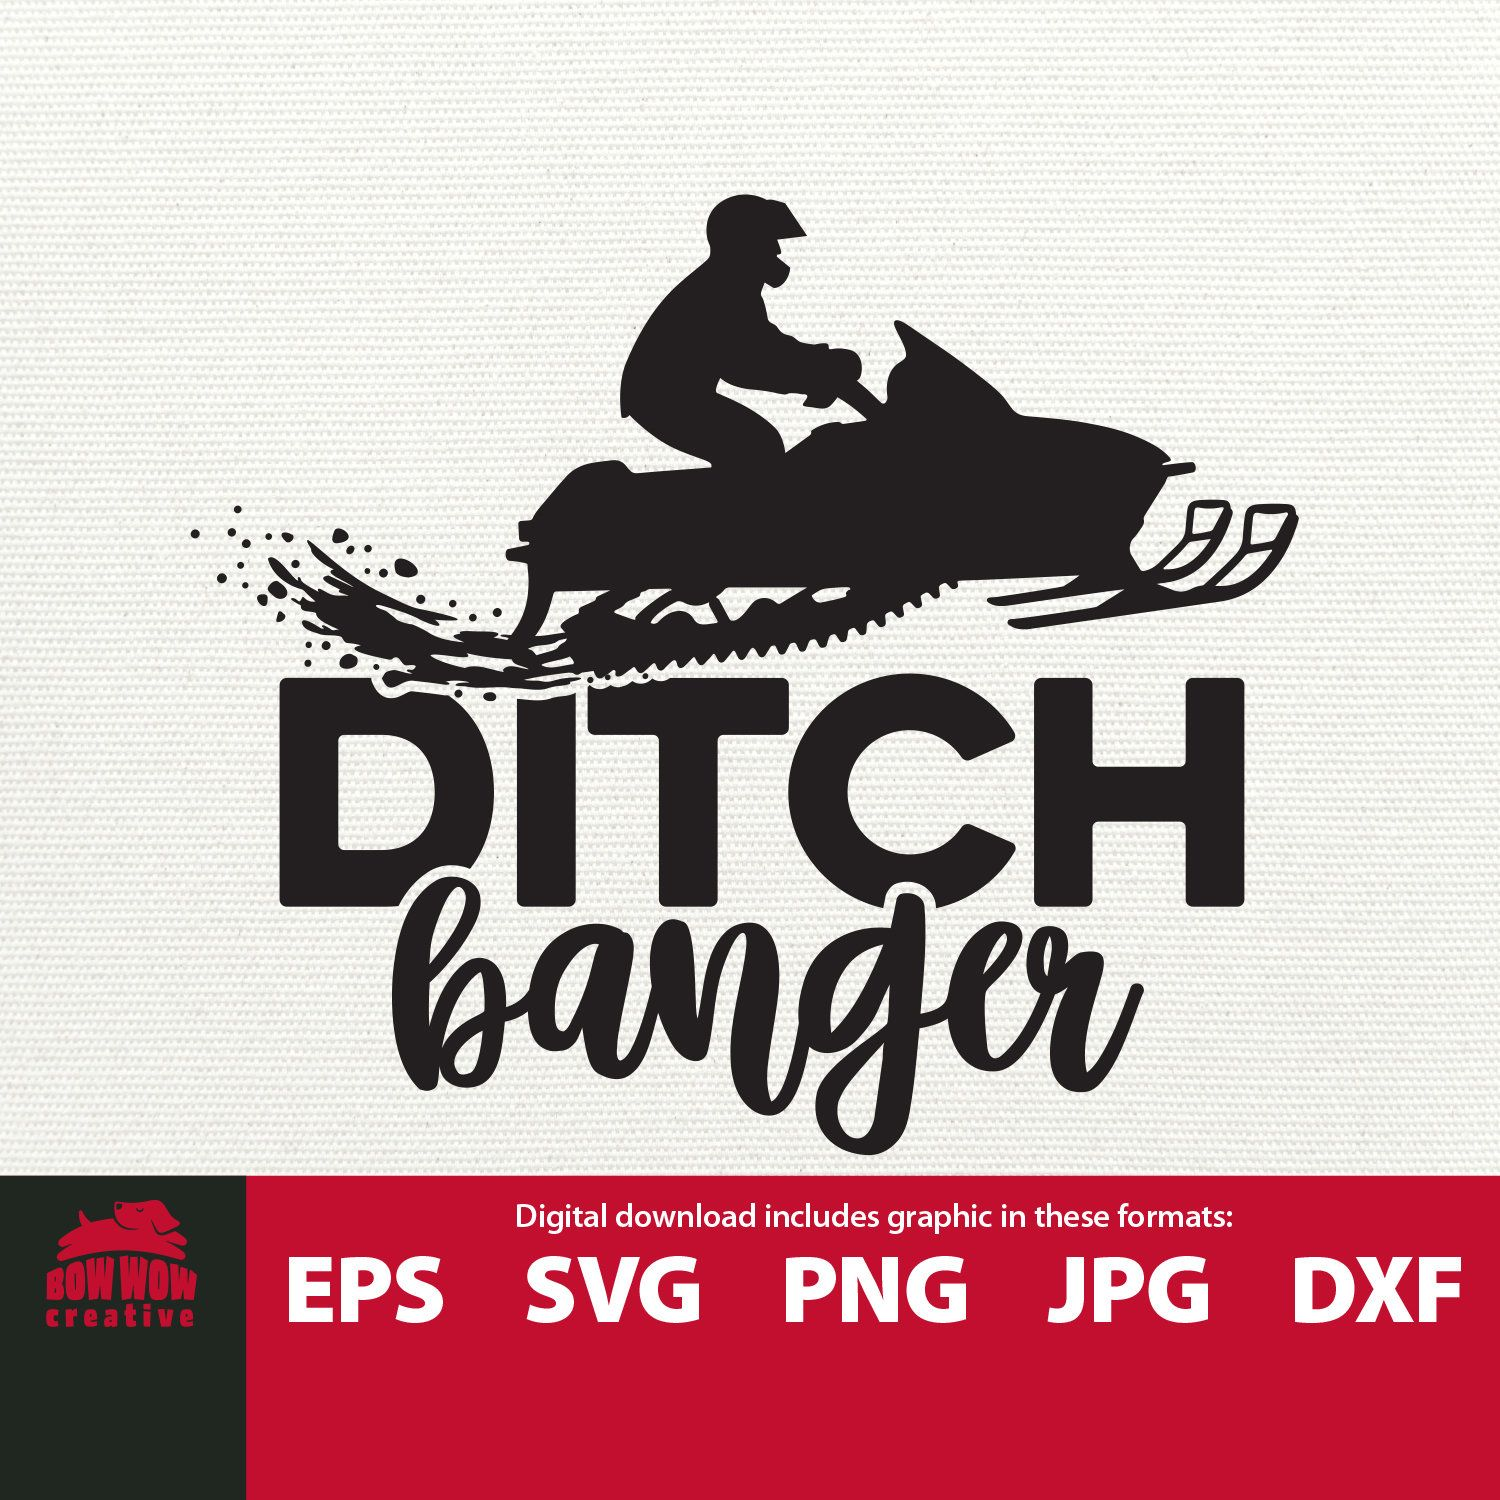 Ditch Banger Svg Snowmobile Svg Snowmobile Clipart Snowmobiling Svg Sledding Svg Snow Machine Svg Gift For Snowmobiler Tshirt Design Sv Svg Quotes Svg Clip Art